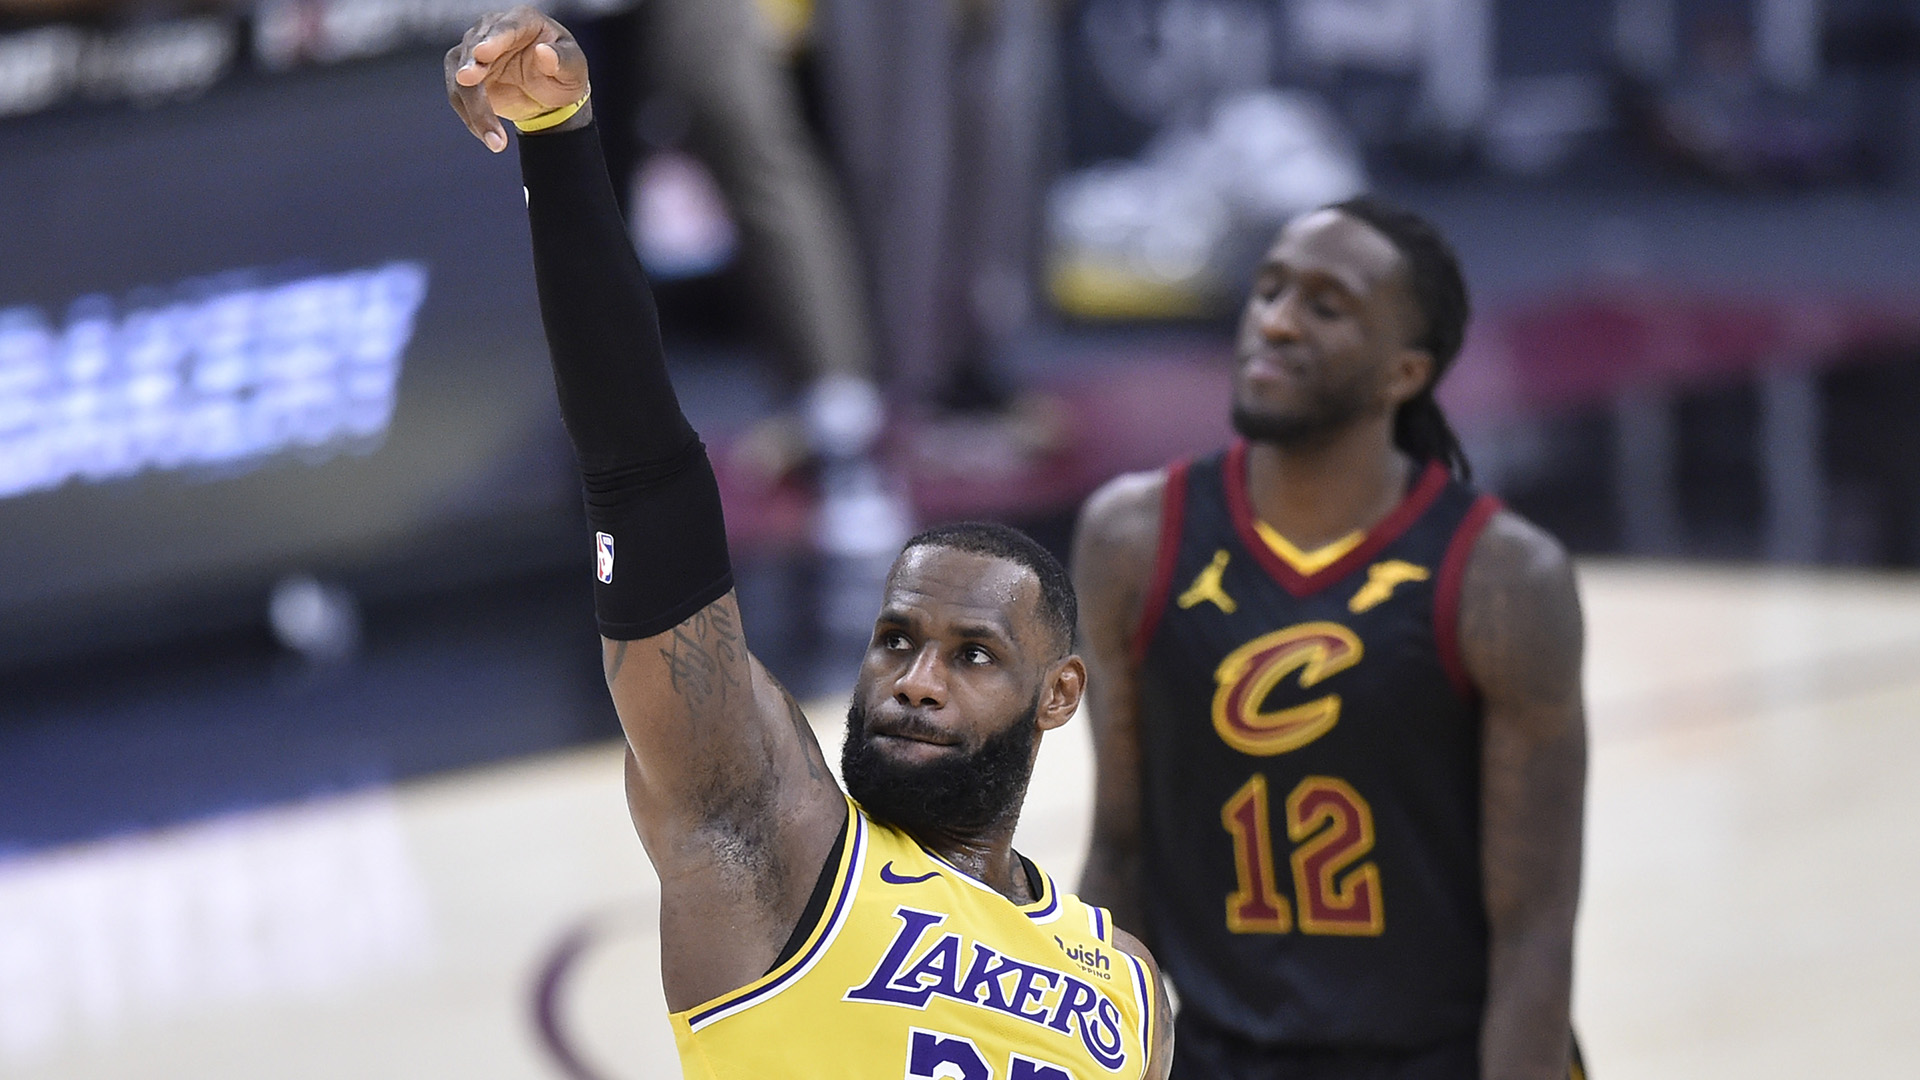 LeBron Puts On A Show In Latest Return To Cleveland